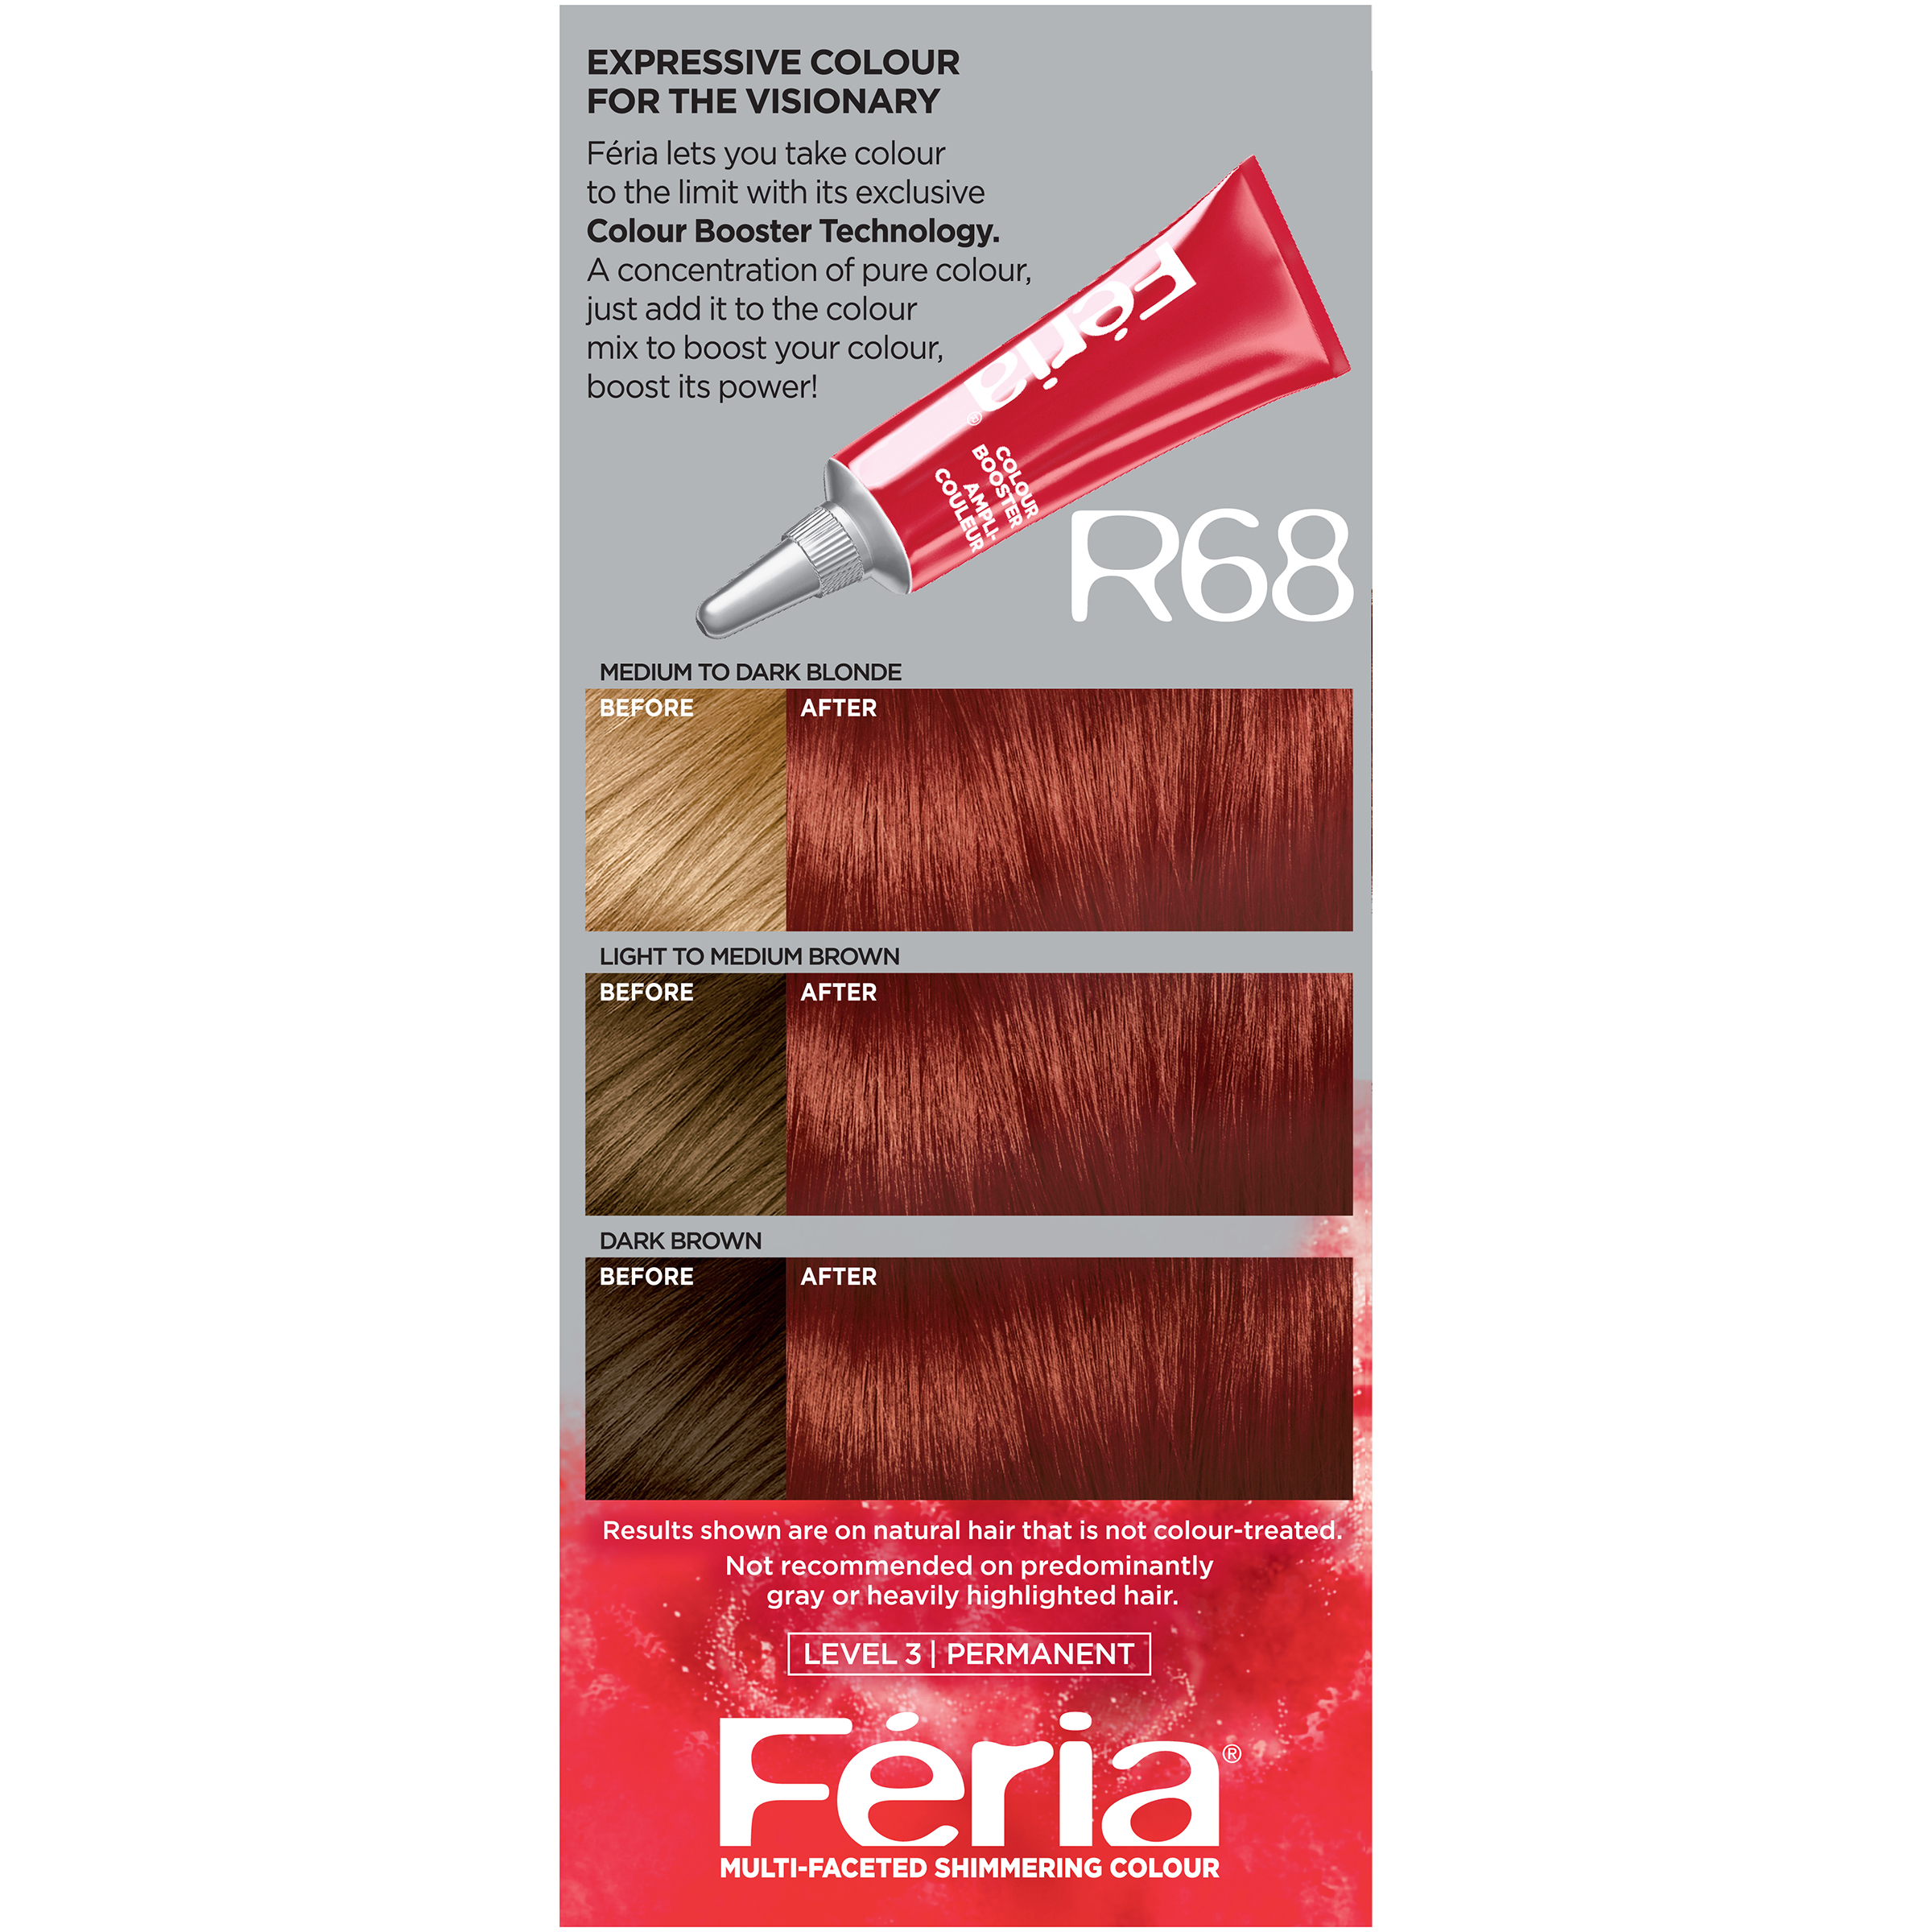 LOreal-Paris-Feria-Shimmering-Permanent-Hair-Color